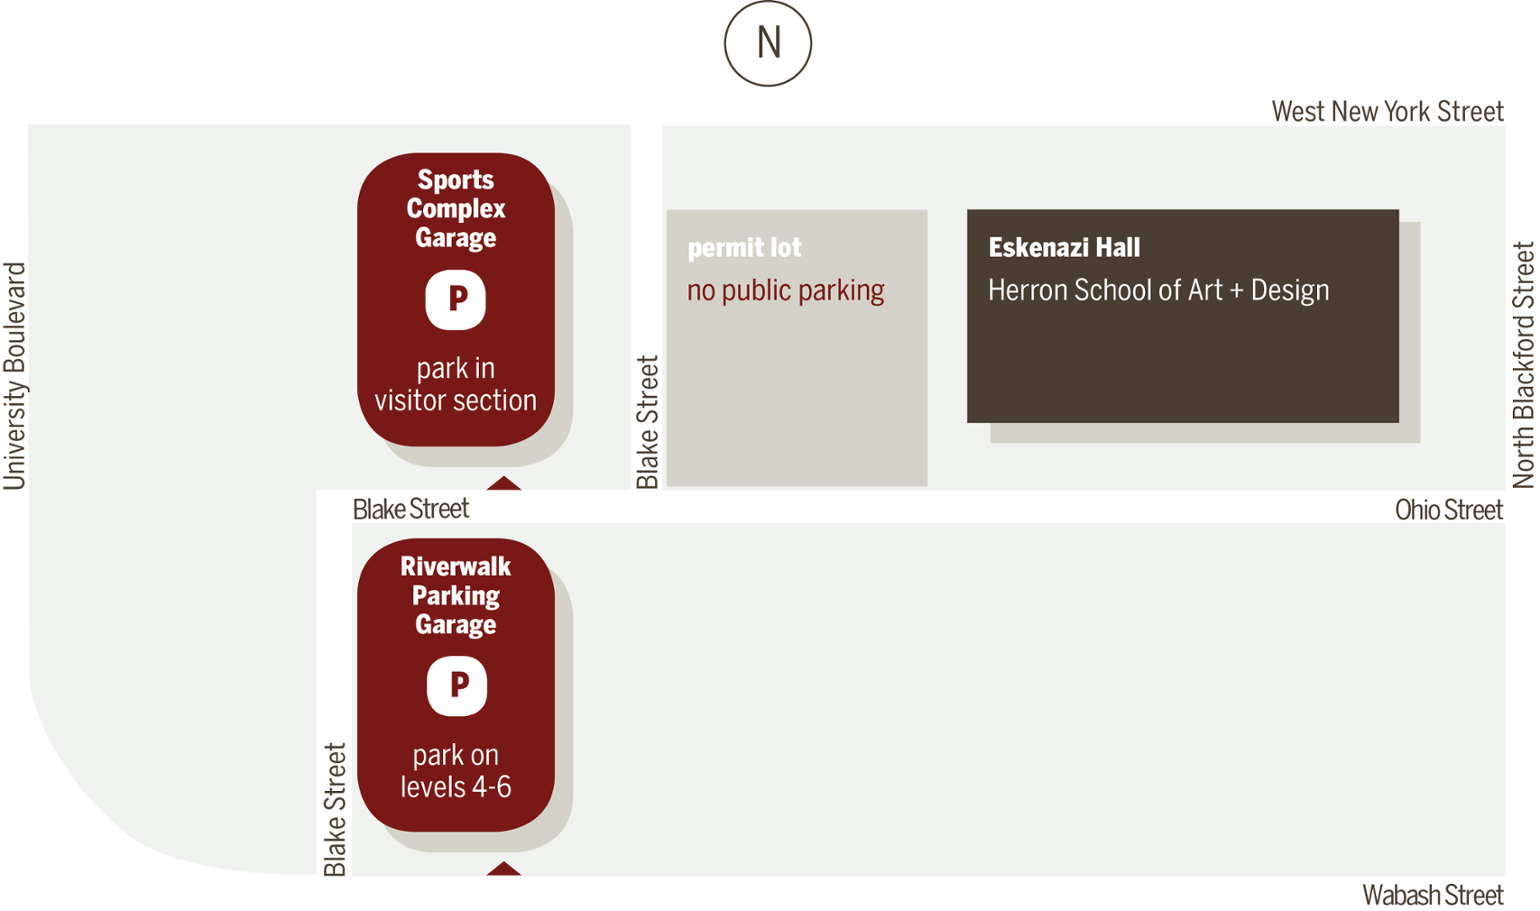 Map illustrating parking in relation to Eskenazi Hall